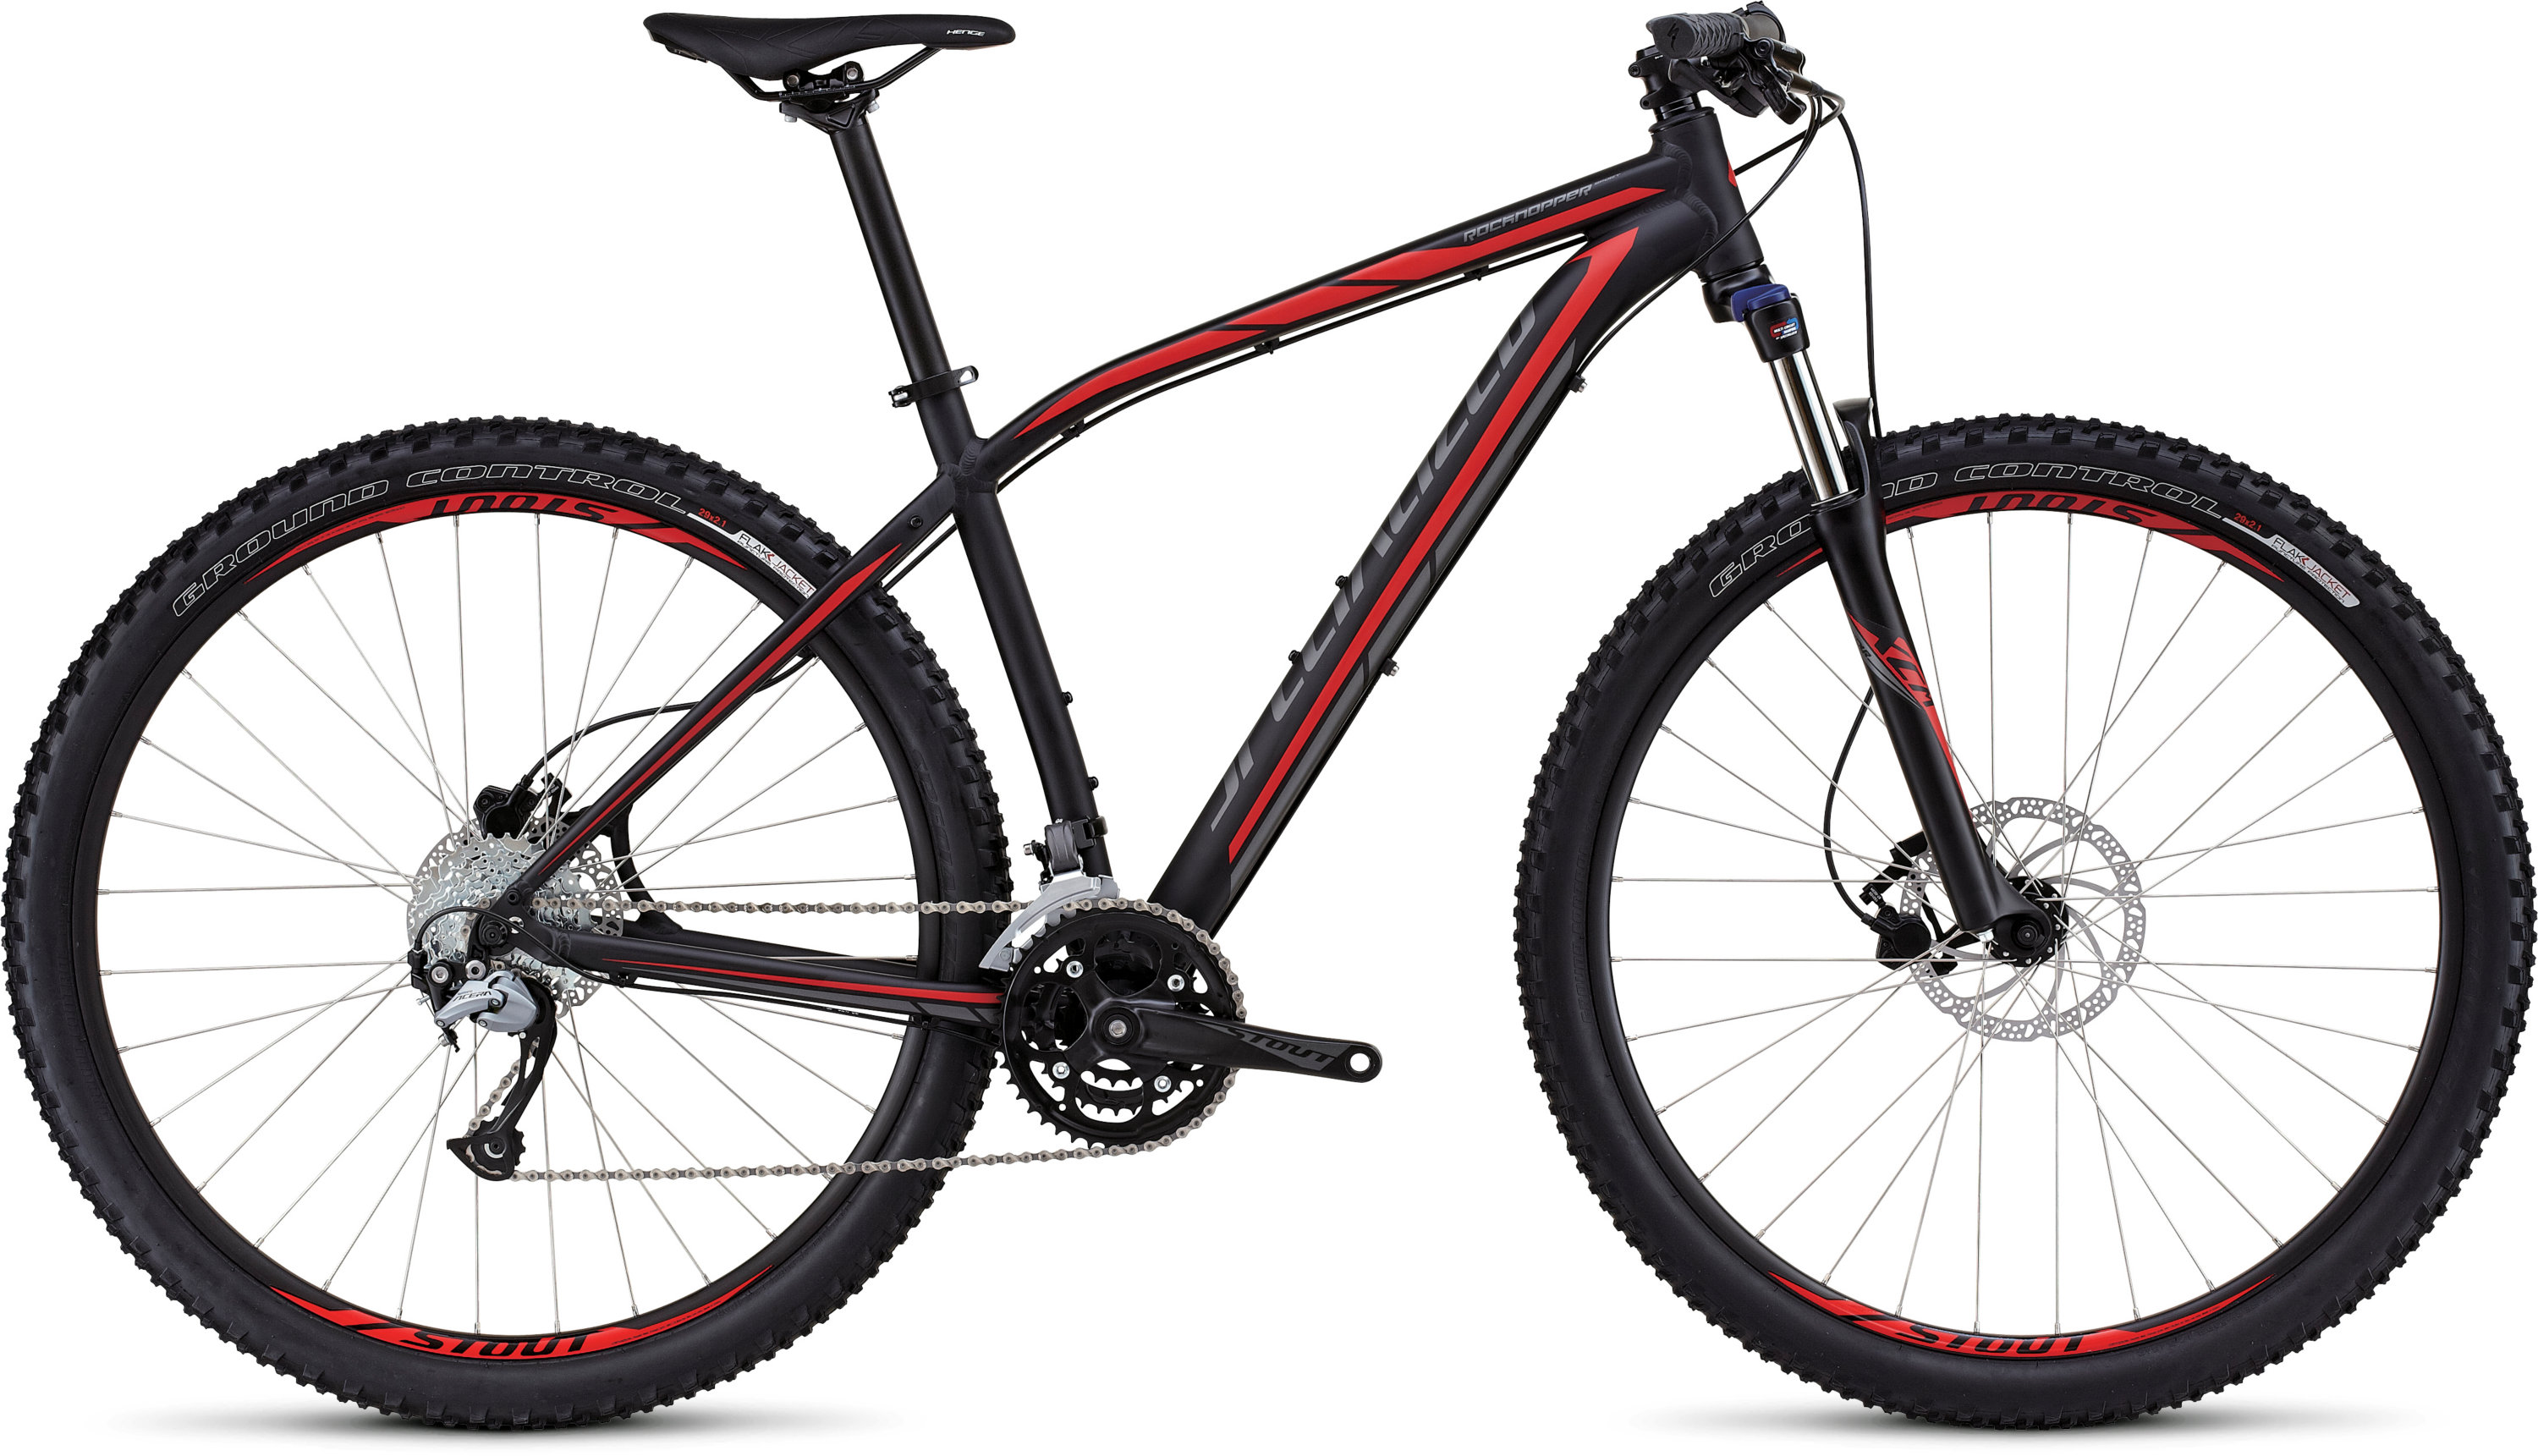 SPECIALIZED RH SPORT 29 BLK/FLORED/CHAR S - schneider-sports